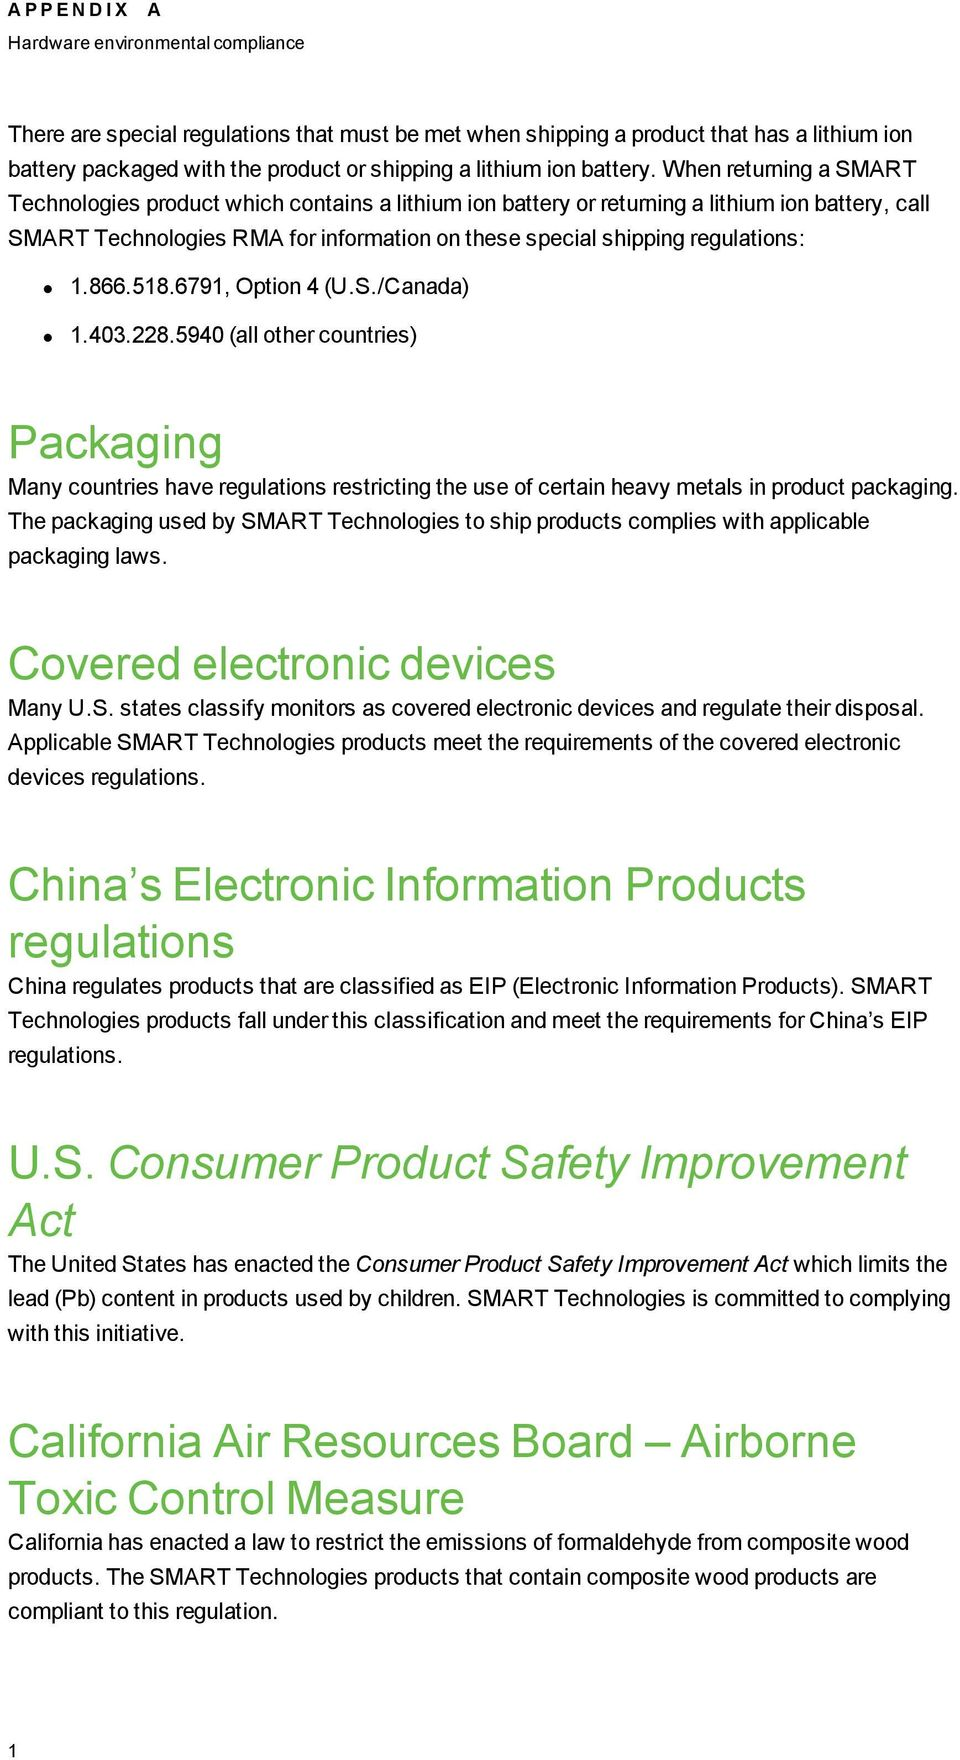 When returning a SMART Technologies product which contains a lithium ion battery or returning a lithium ion battery, call SMART Technologies RMA for information on these special shipping regulations: